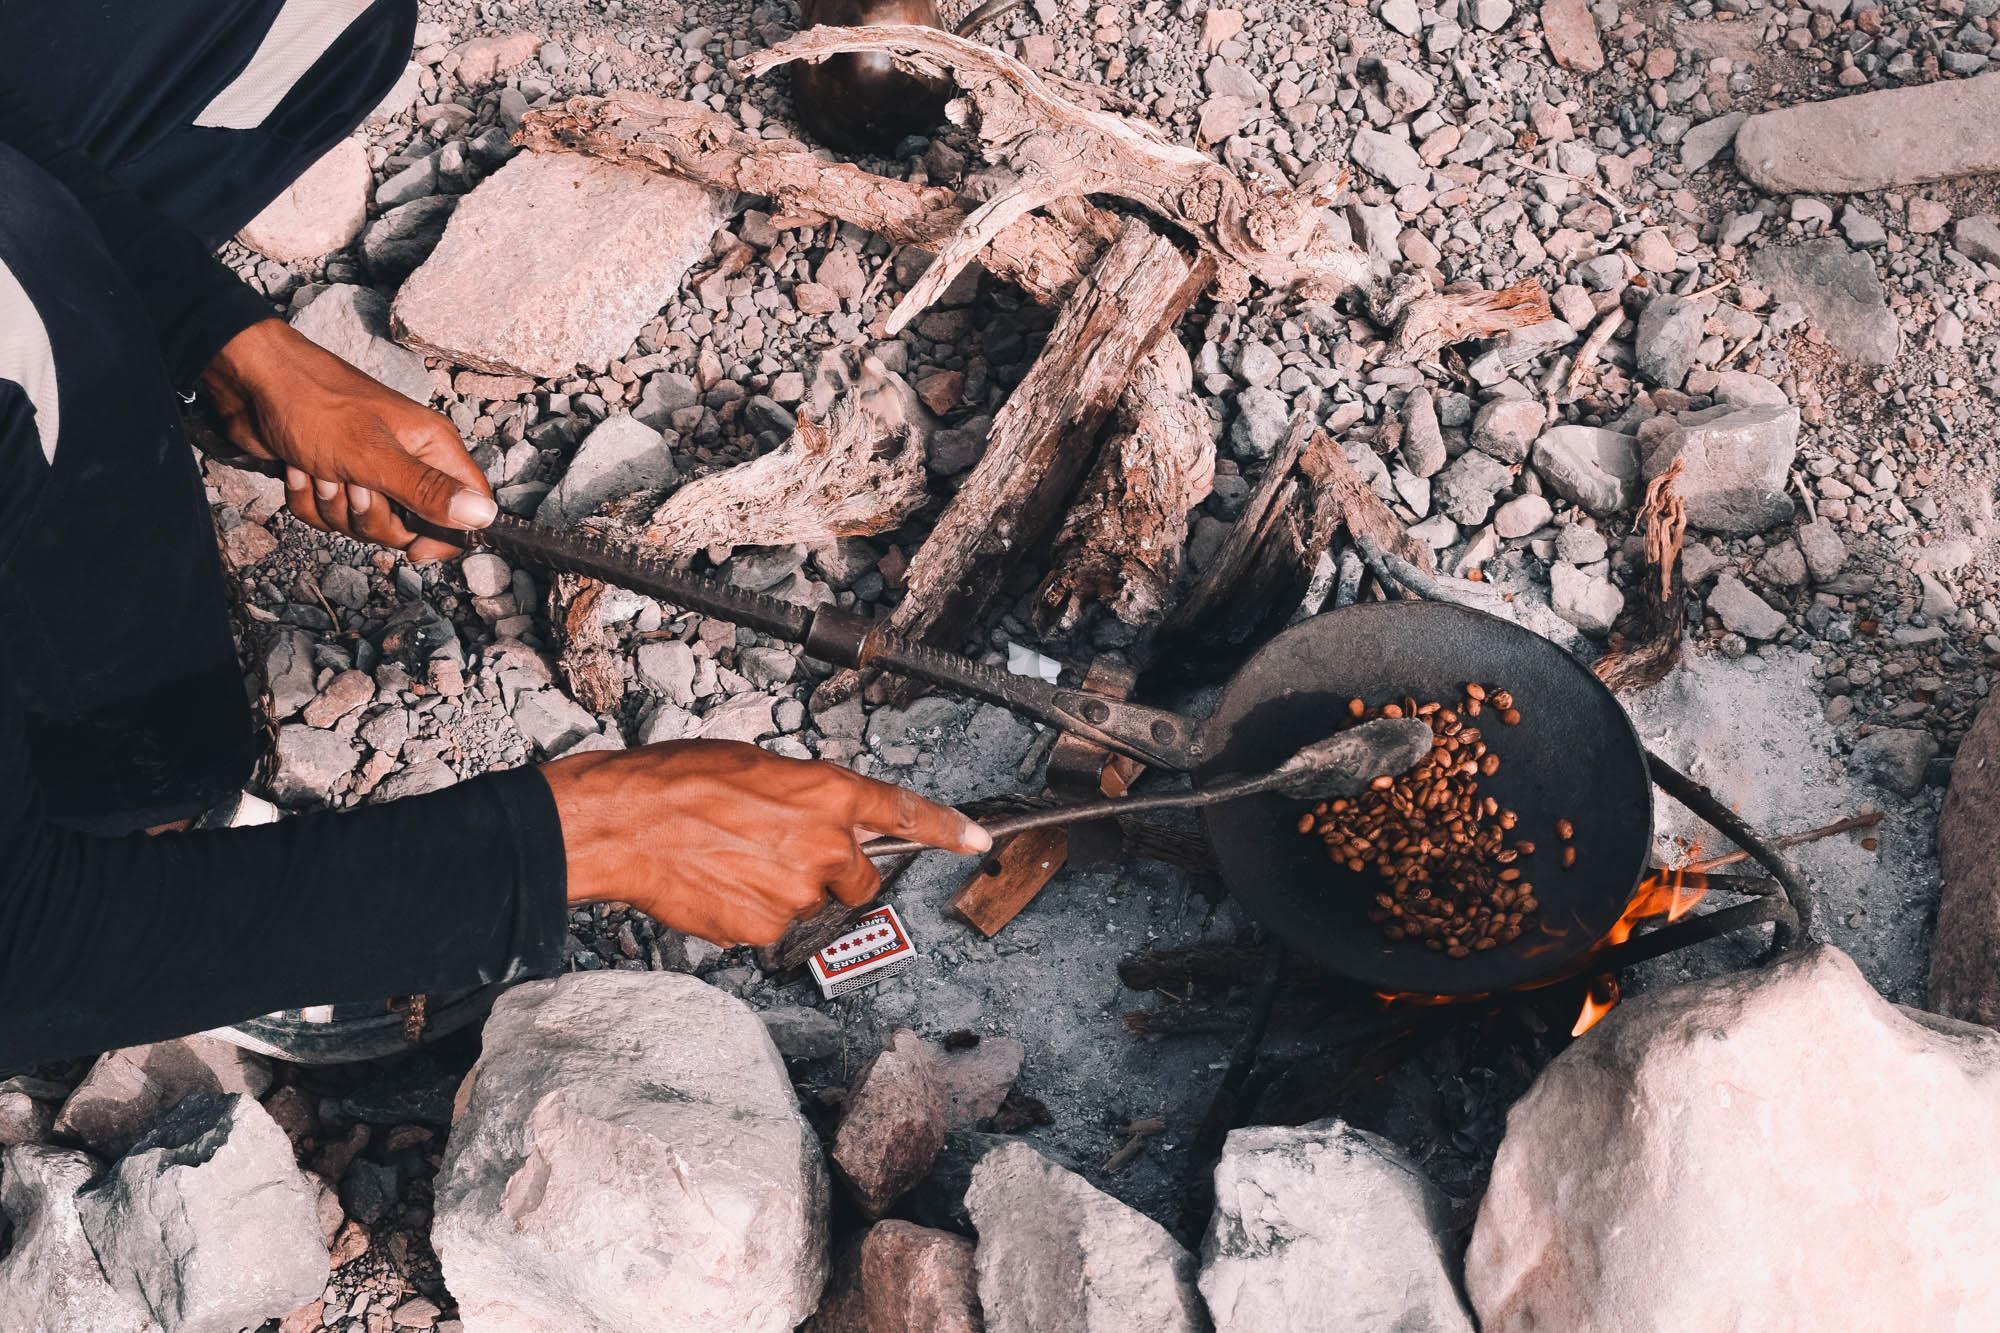 Coffee beans are roasted over the fire in Jordan